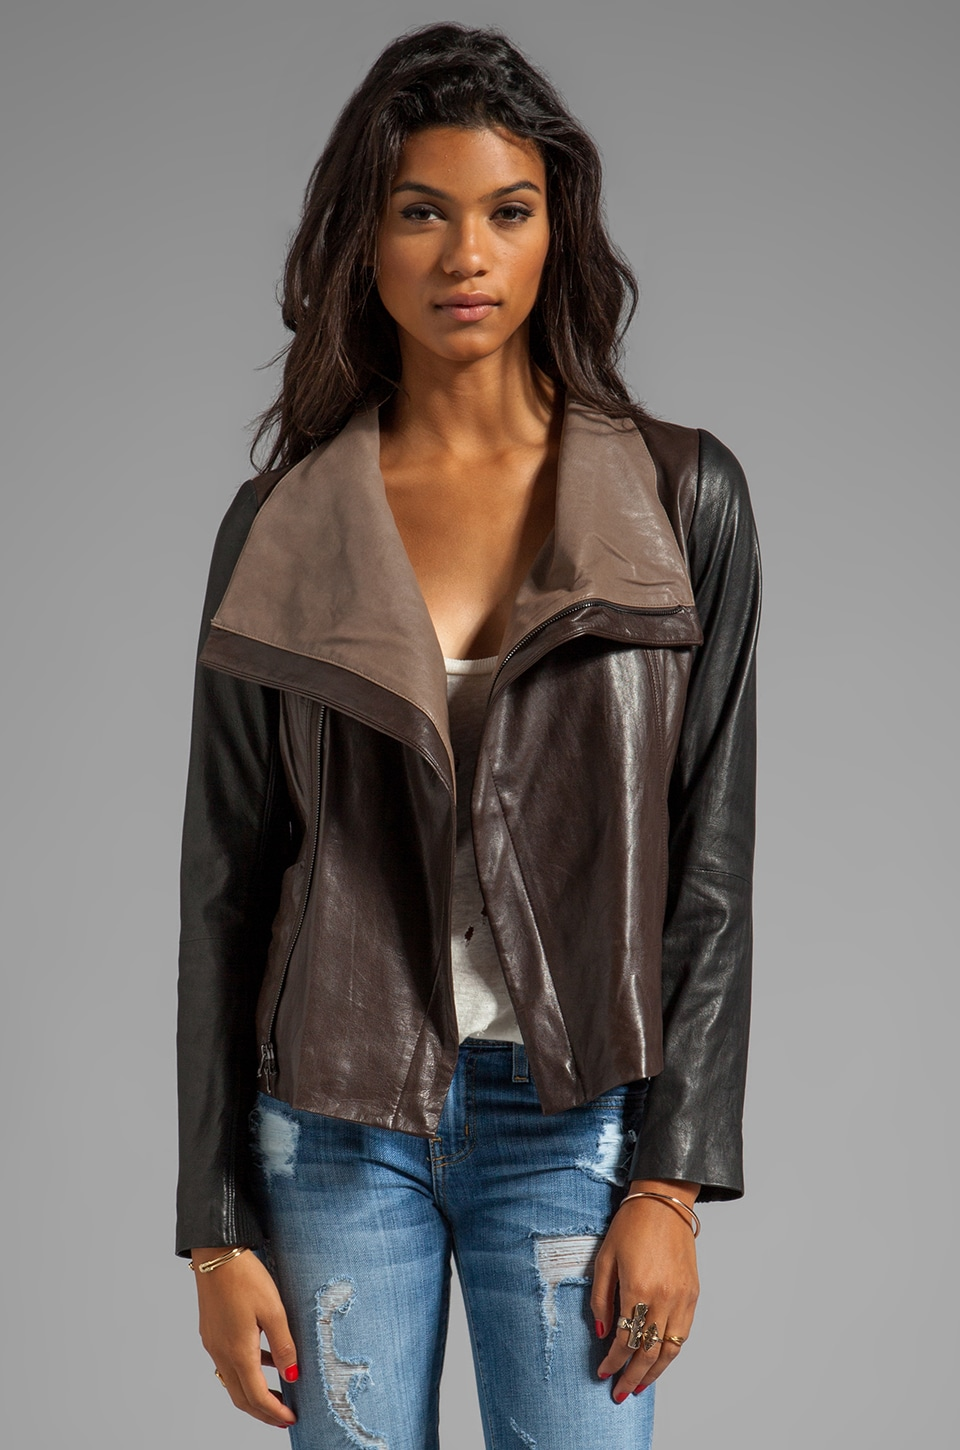 Vince Leather Colorblock Jacket in Espresso/Black/Oak